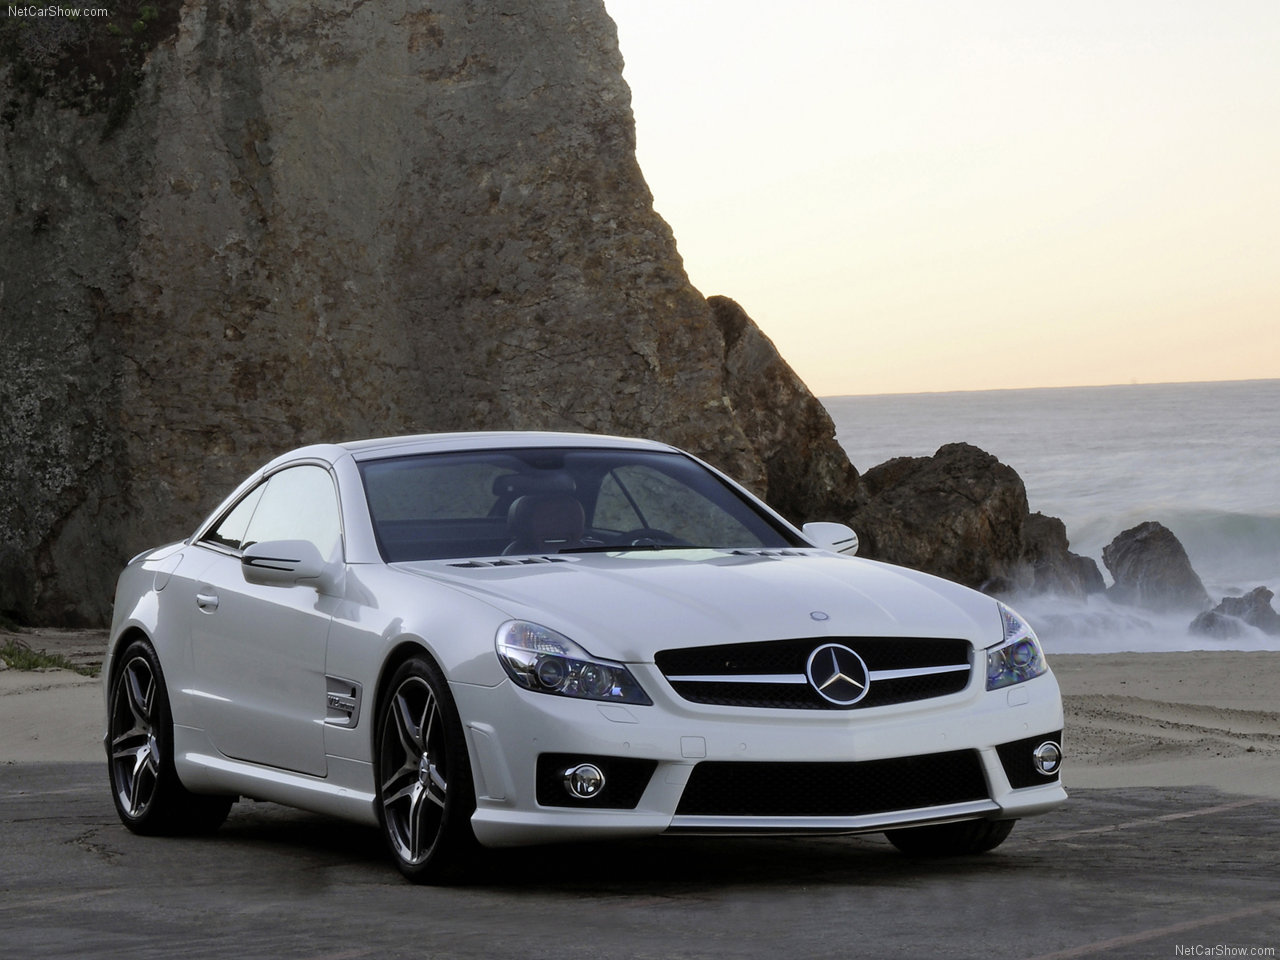 2009 mercedes benz sl65 amg mercedes benz cars. Black Bedroom Furniture Sets. Home Design Ideas